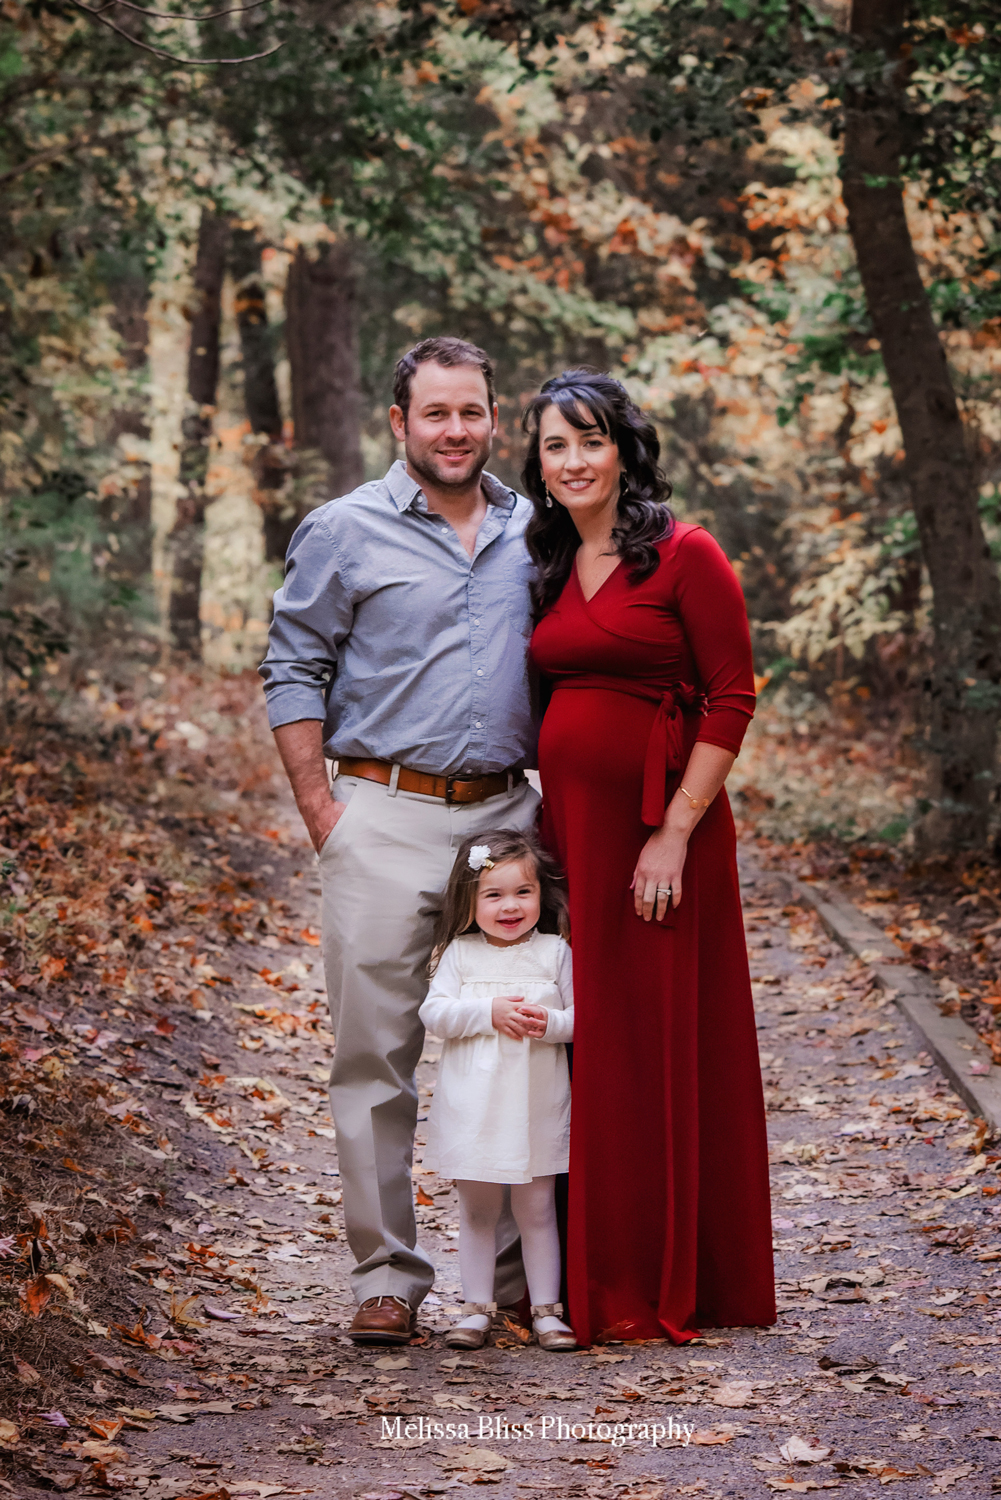 holiday-family-portrait-on-the-noland-trail-family-of-three-pregnant-mom-crimson-red-dress-portsmouth-photographer-melissa-bliss-photography.jpg